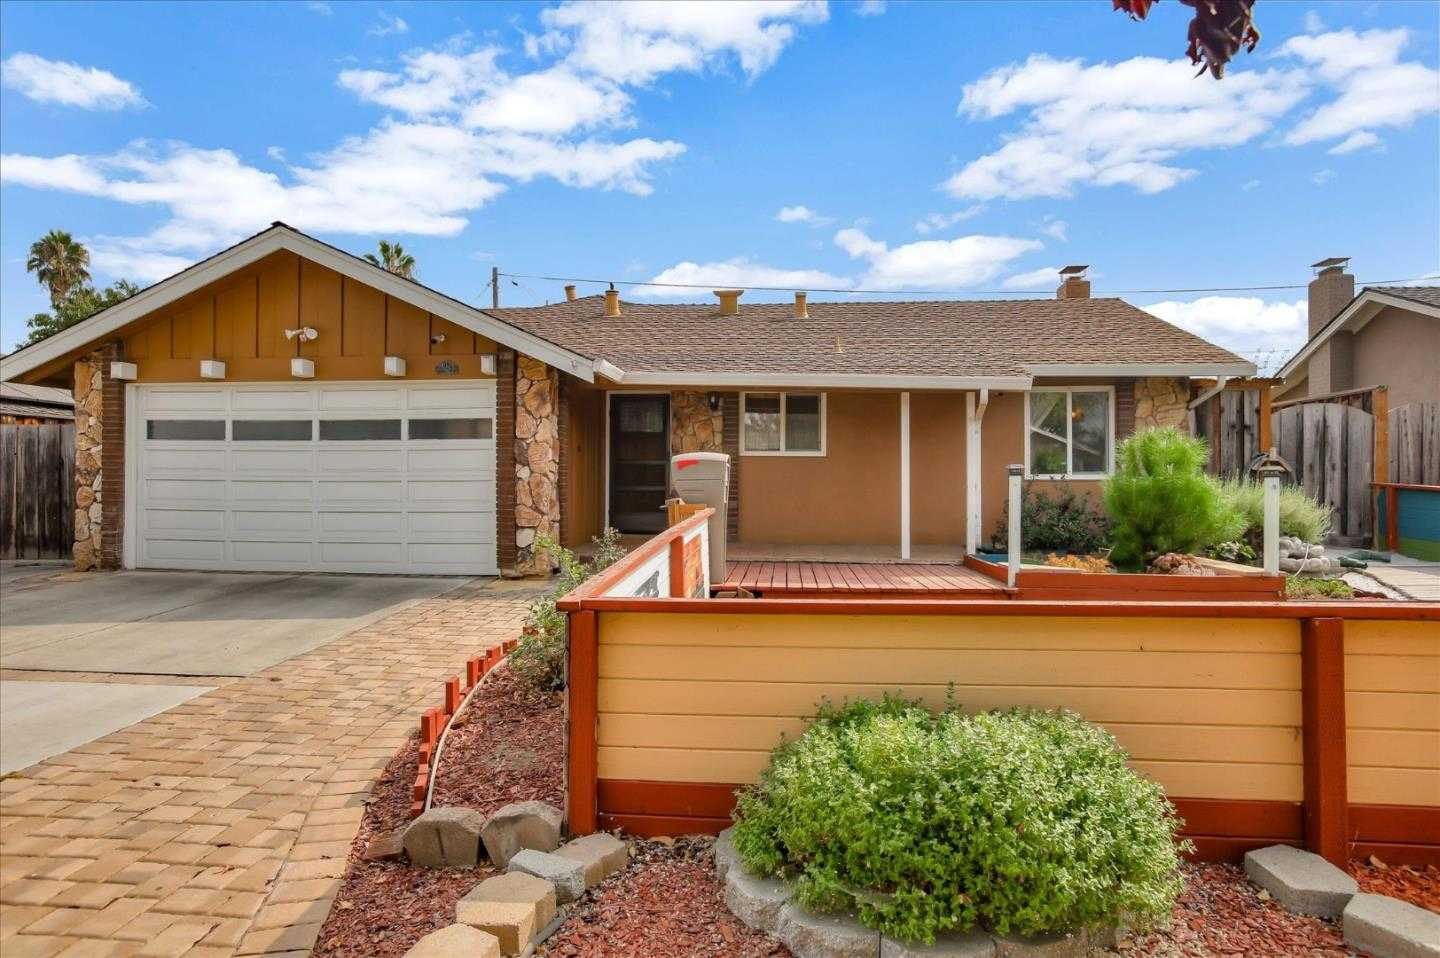 $1,228,000 - 3Br/2Ba -  for Sale in San Jose